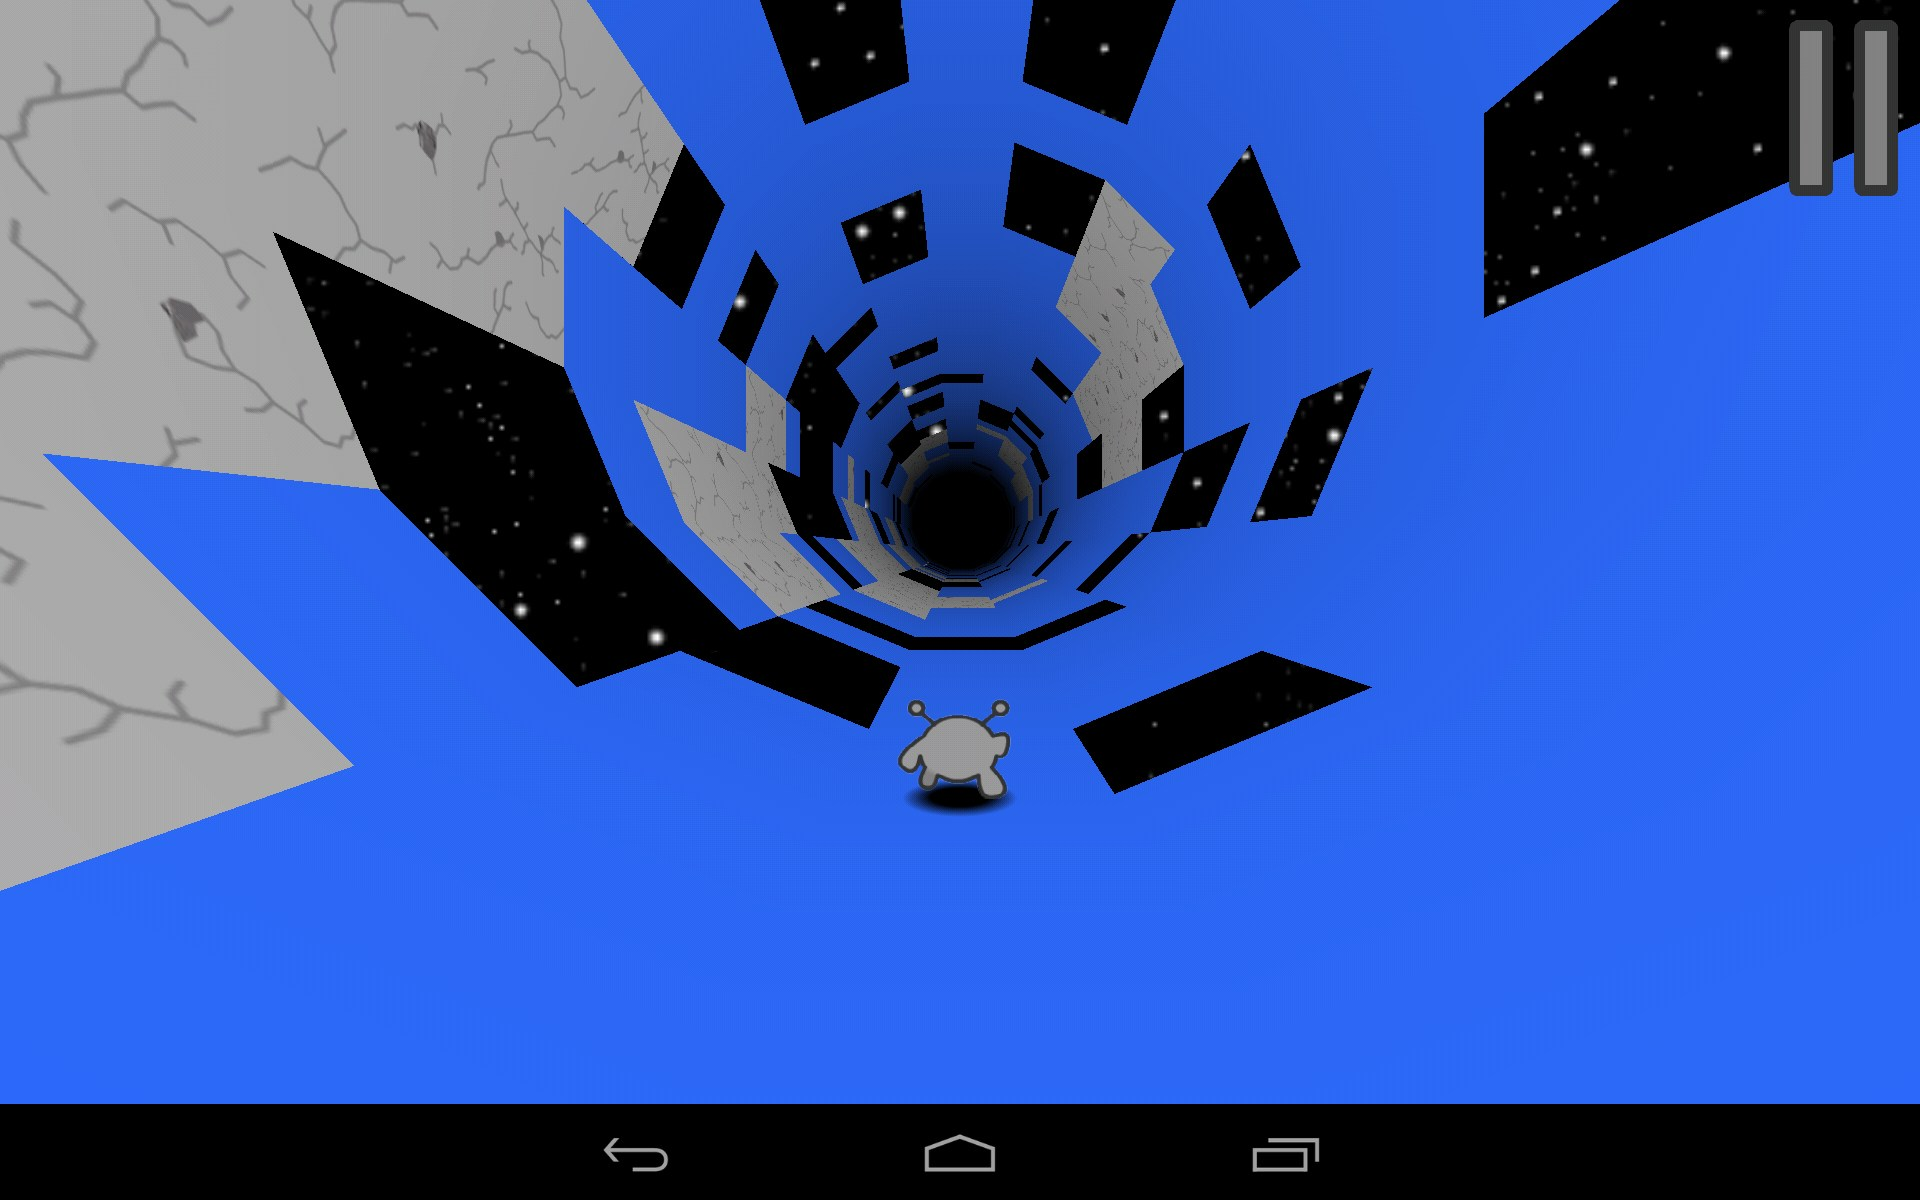 space runner game